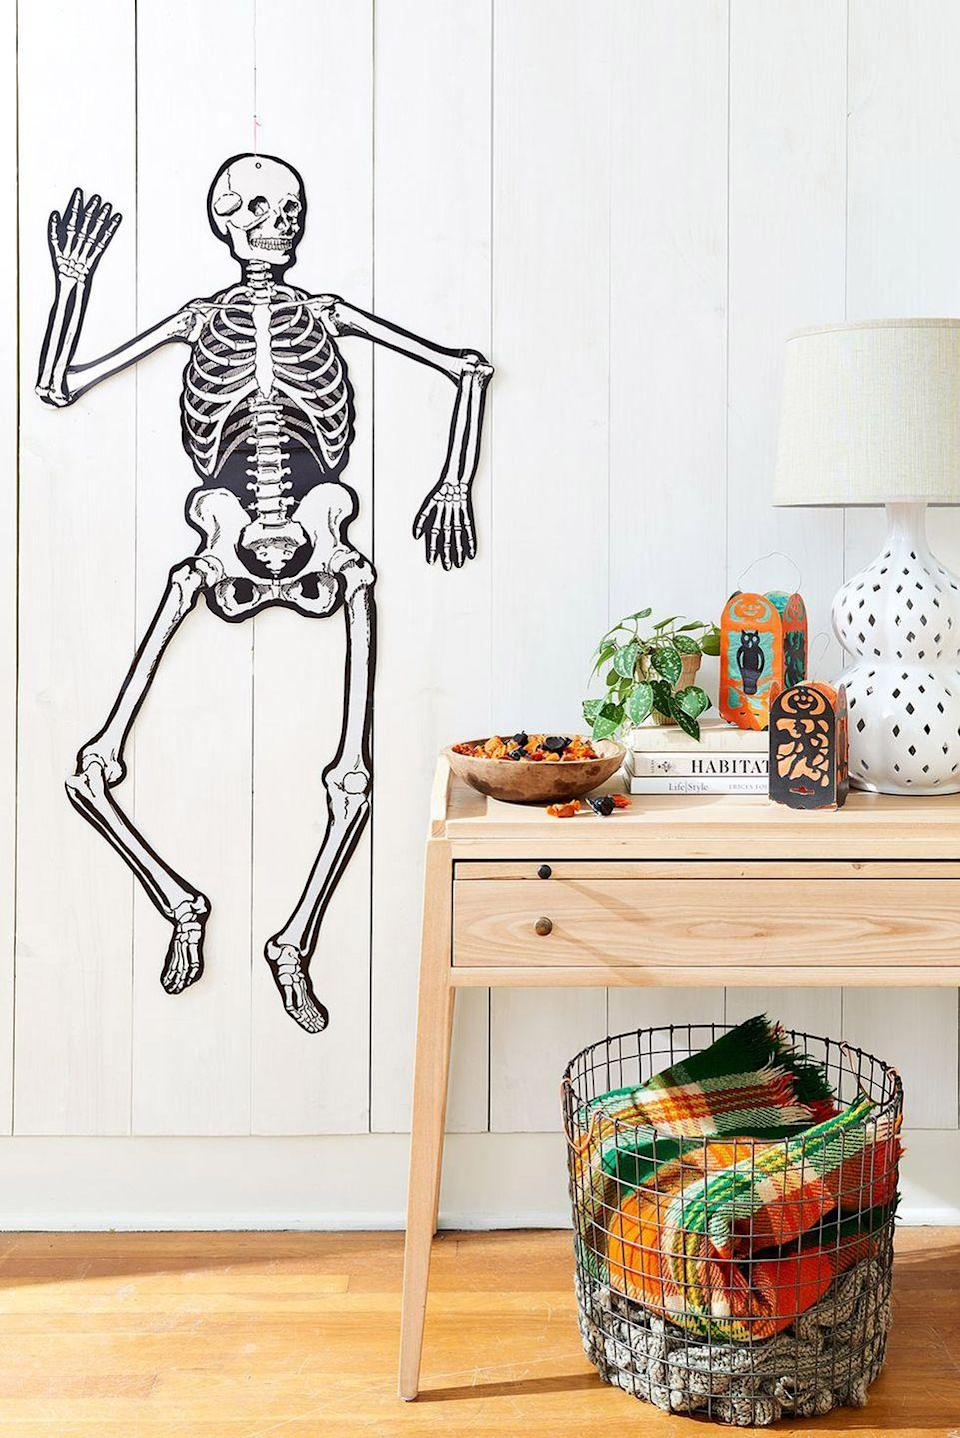 "<p>Even if it's just your crew this year, pull out all the <a href=""https://www.countryliving.com/entertaining/g271/halloween-decorating-1005/"" rel=""nofollow noopener"" target=""_blank"" data-ylk=""slk:fun Halloween party ideas"" class=""link rapid-noclick-resp"">fun Halloween party ideas</a> to ensure an absolutely spooktacular time.</p><p><a class=""link rapid-noclick-resp"" href=""https://www.amazon.com/Amscan-Halloween-Decoration-Jointed-Skeleton/dp/B0040IS3H0/?tag=syn-yahoo-20&ascsubtag=%5Bartid%7C2139.g.34440360%5Bsrc%7Cyahoo-us"" rel=""nofollow noopener"" target=""_blank"" data-ylk=""slk:SHOP SKELETON DECORATION"">SHOP SKELETON DECORATION</a></p>"